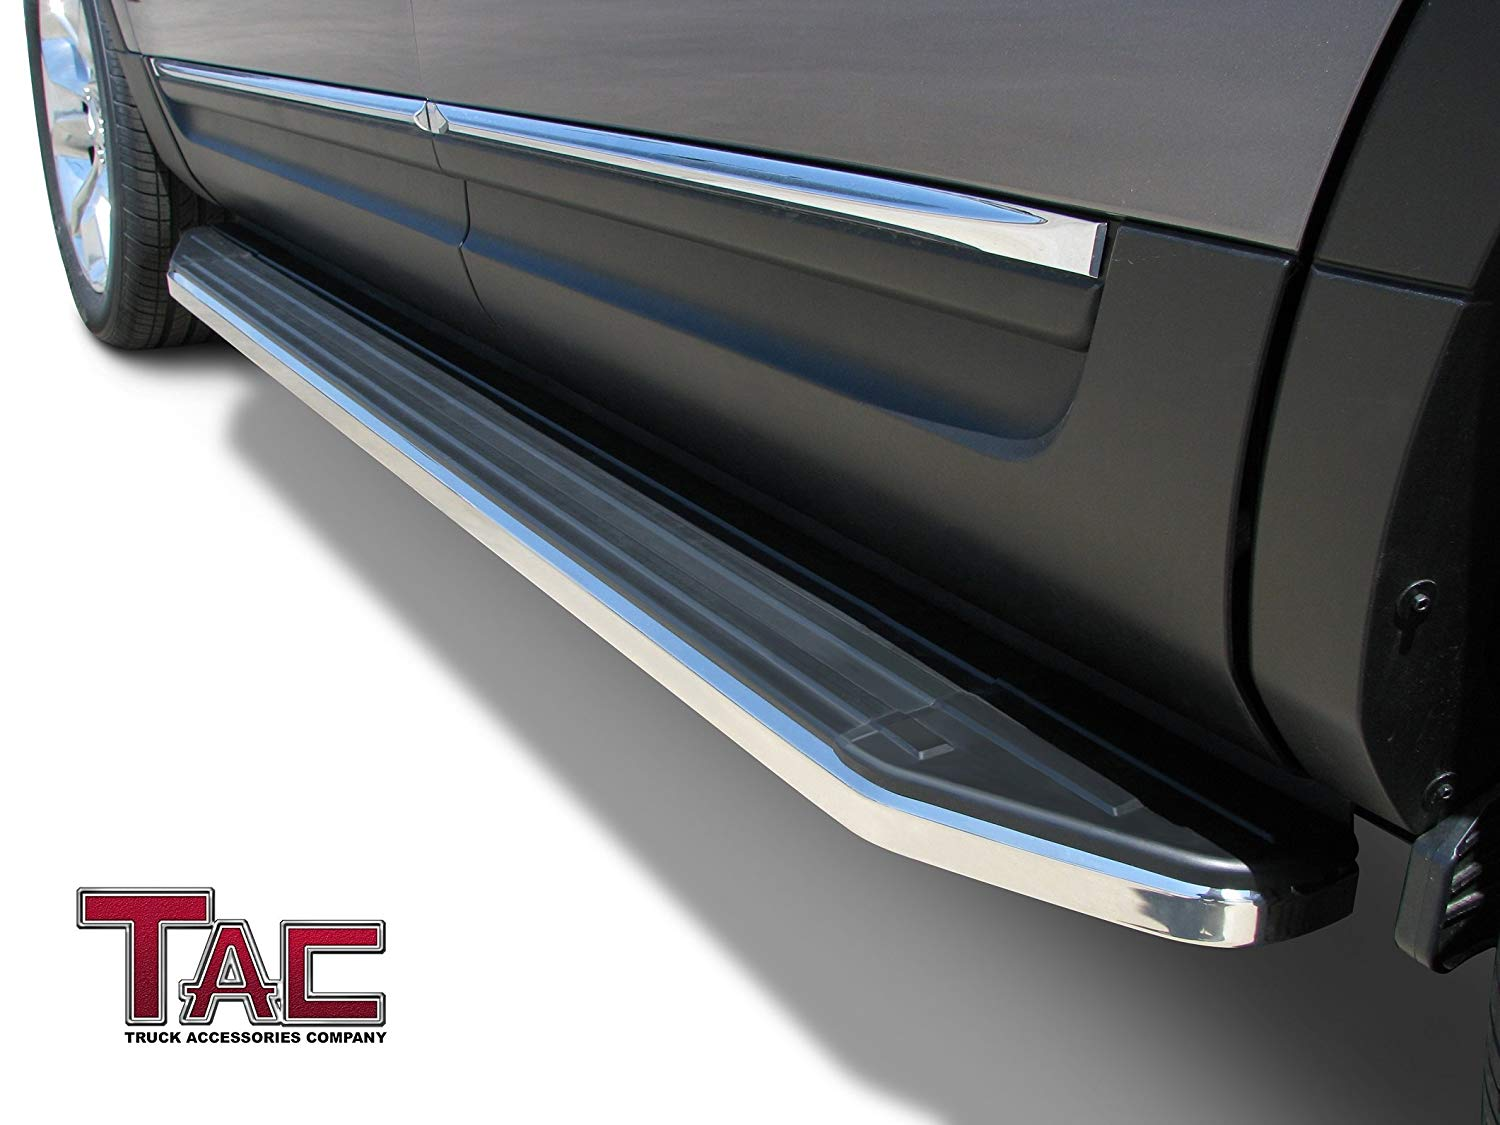 // 2011-2020 Dodge Durango Rear Bumper Guard Black Protection Nerf Push Bar TAC Custom Fit 2011-2020 Jeep Grand Cherokee Excl. Limited X, High Altitude, Trailhawk, Trawkhawk, SRT, Summit Models